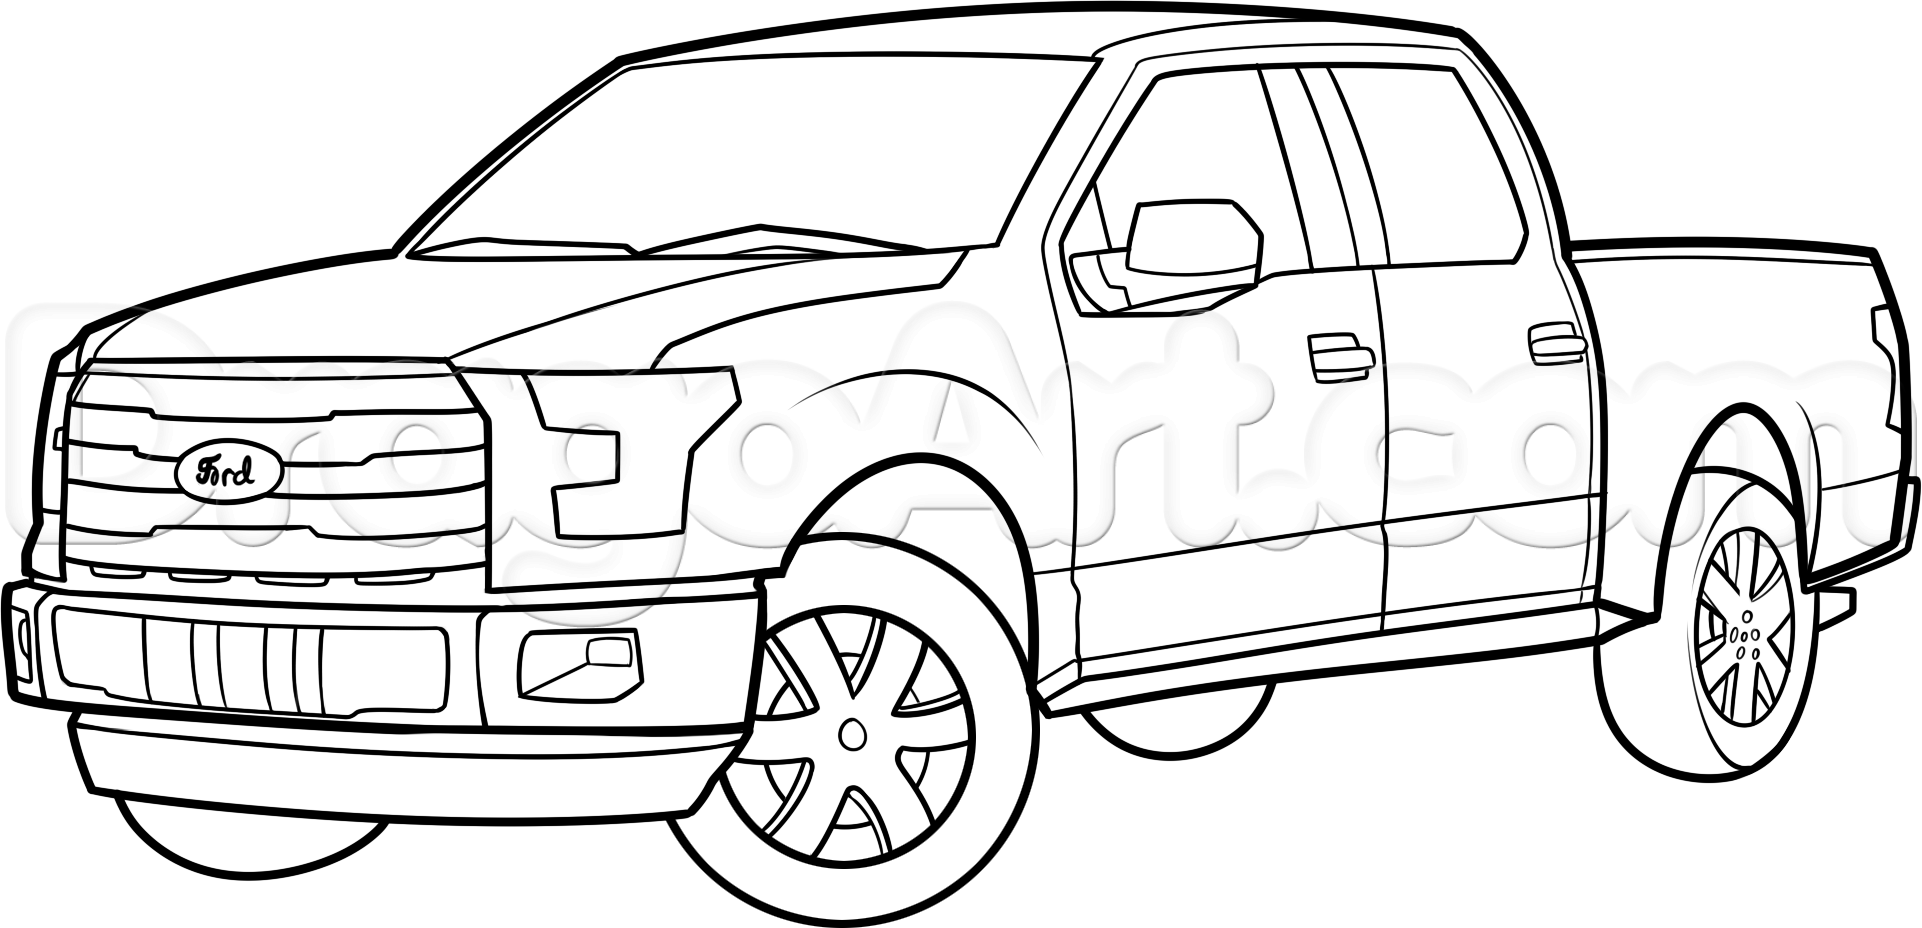 Chevy Silverado Coloring Pages At Getcolorings